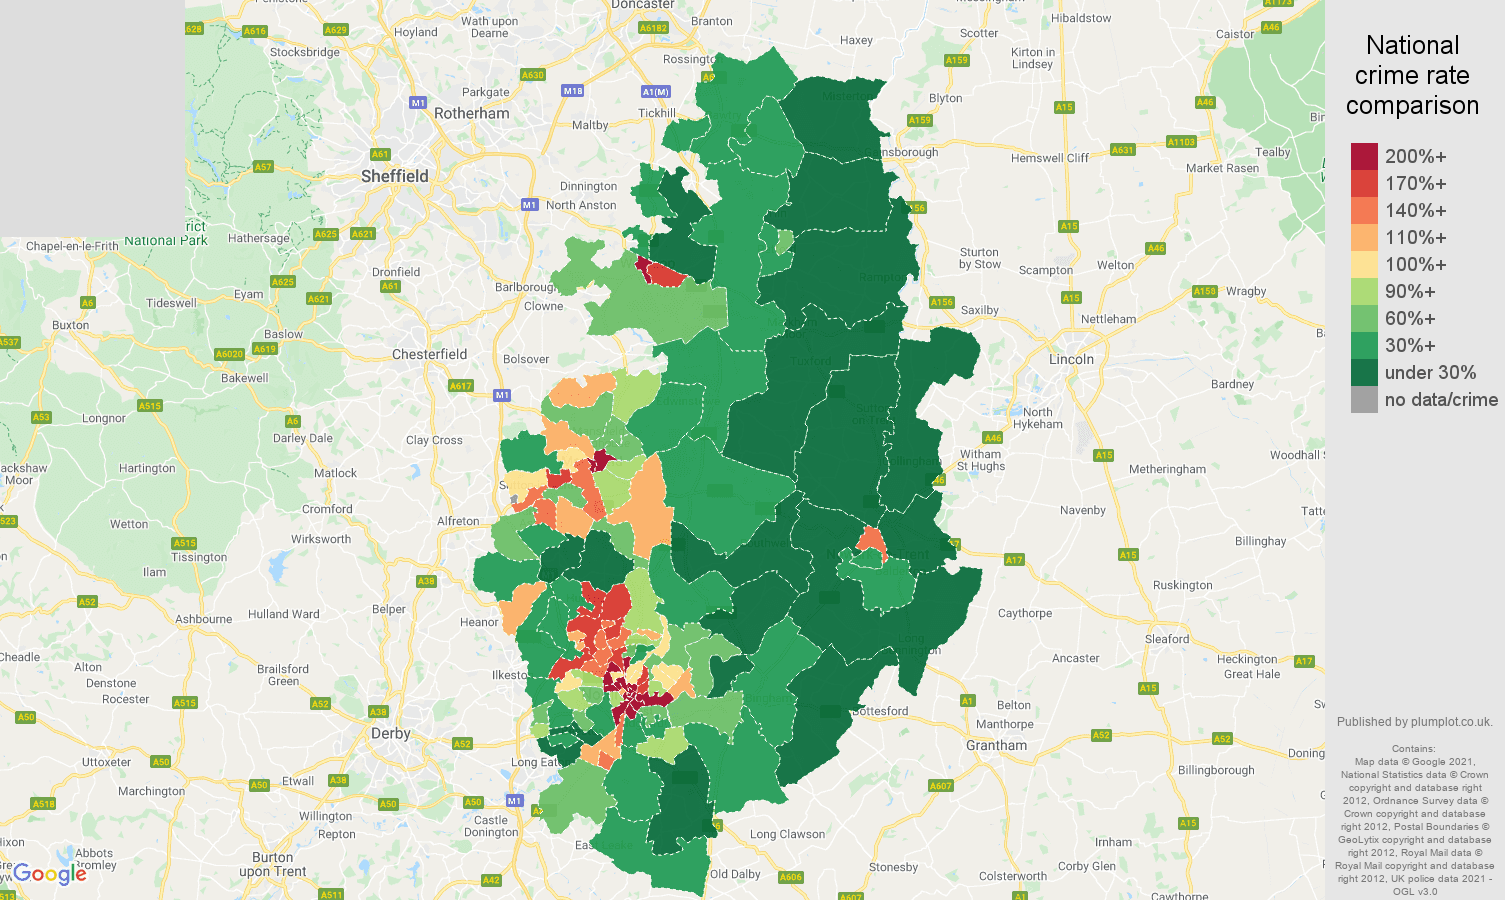 Nottinghamshire drugs crime rate comparison map